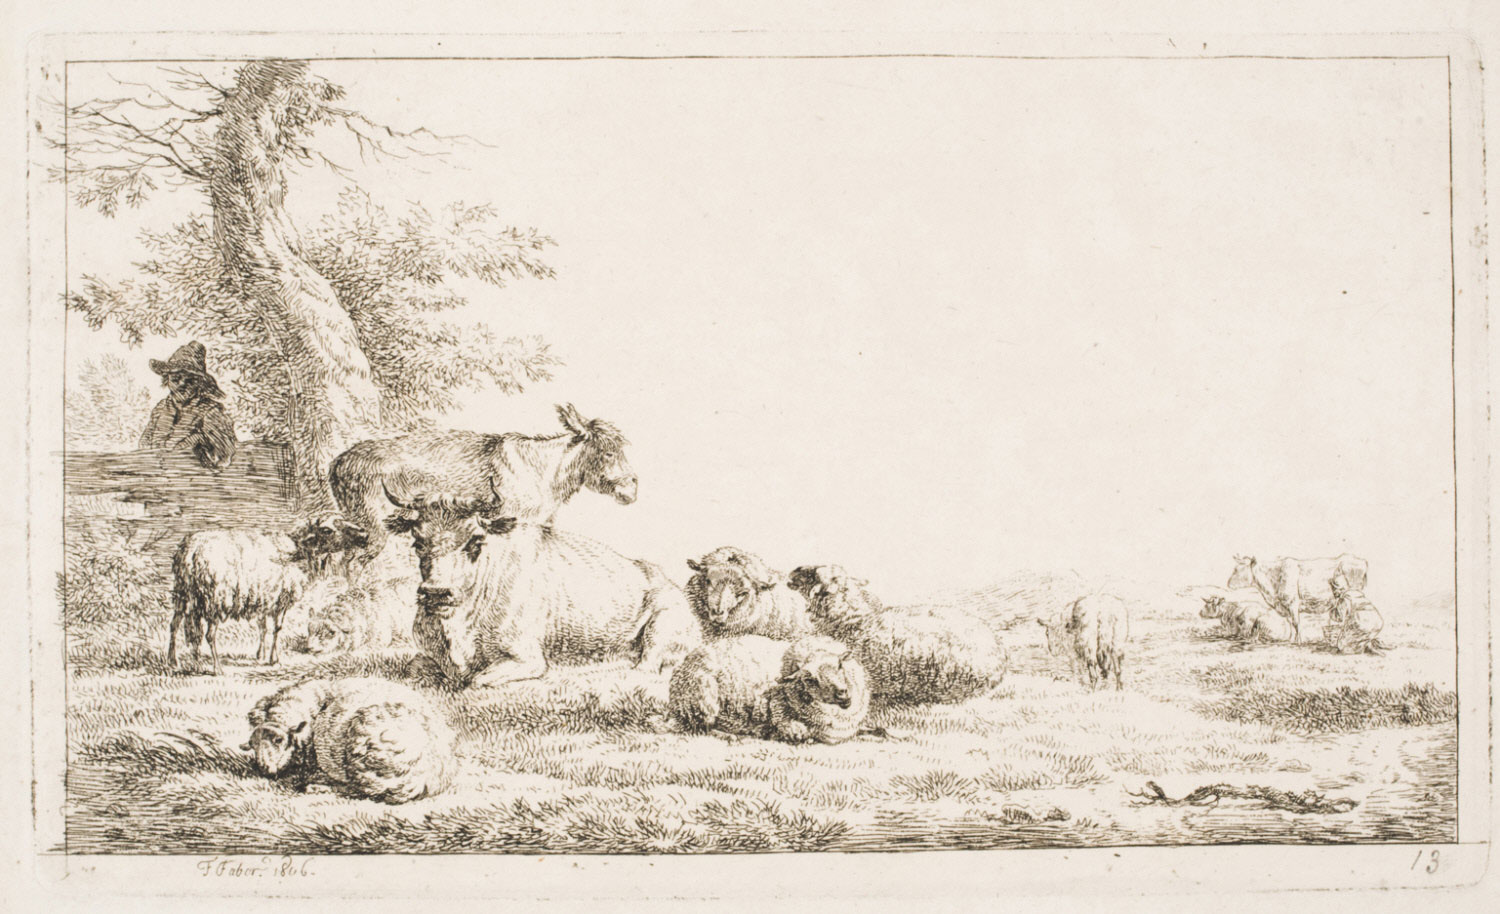 A Farmer and a Milkmaid with a Donkey, Sheep and Cows